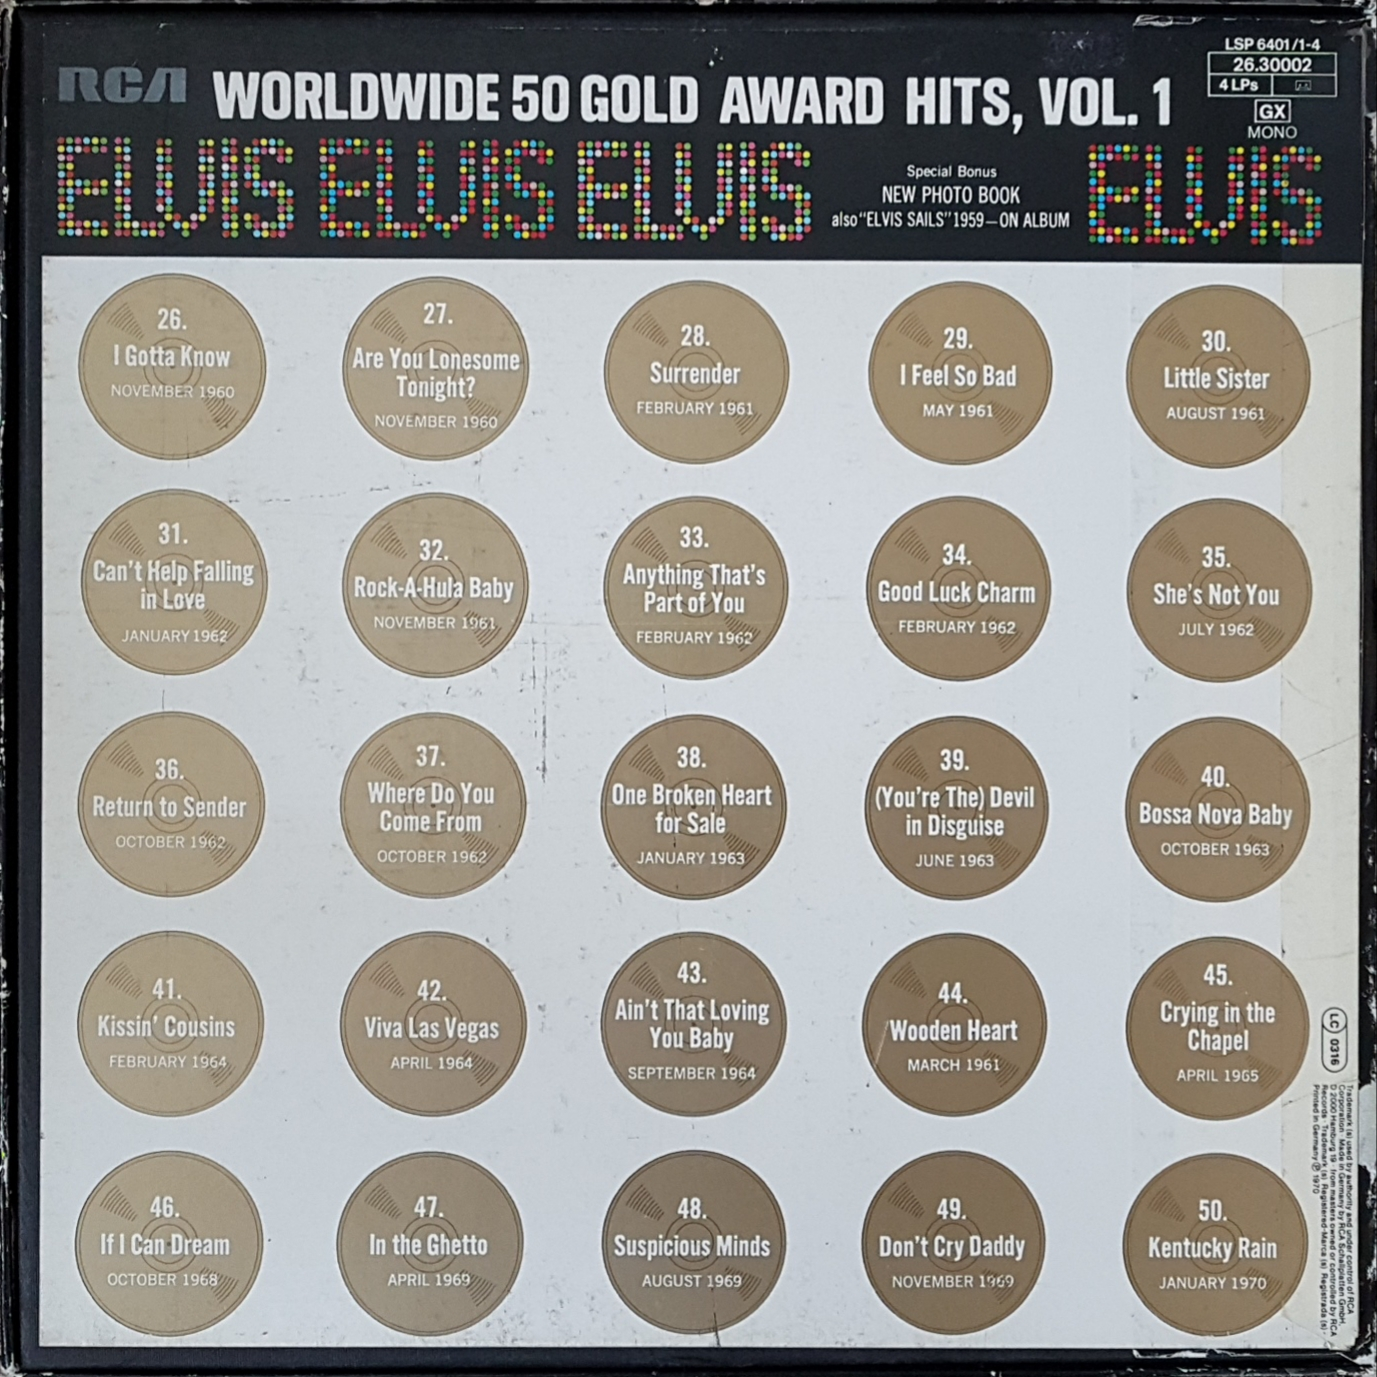 WORLDWIDE 50 GOLD AWARD HITS, VOL.1 20190717_164116rfjvh